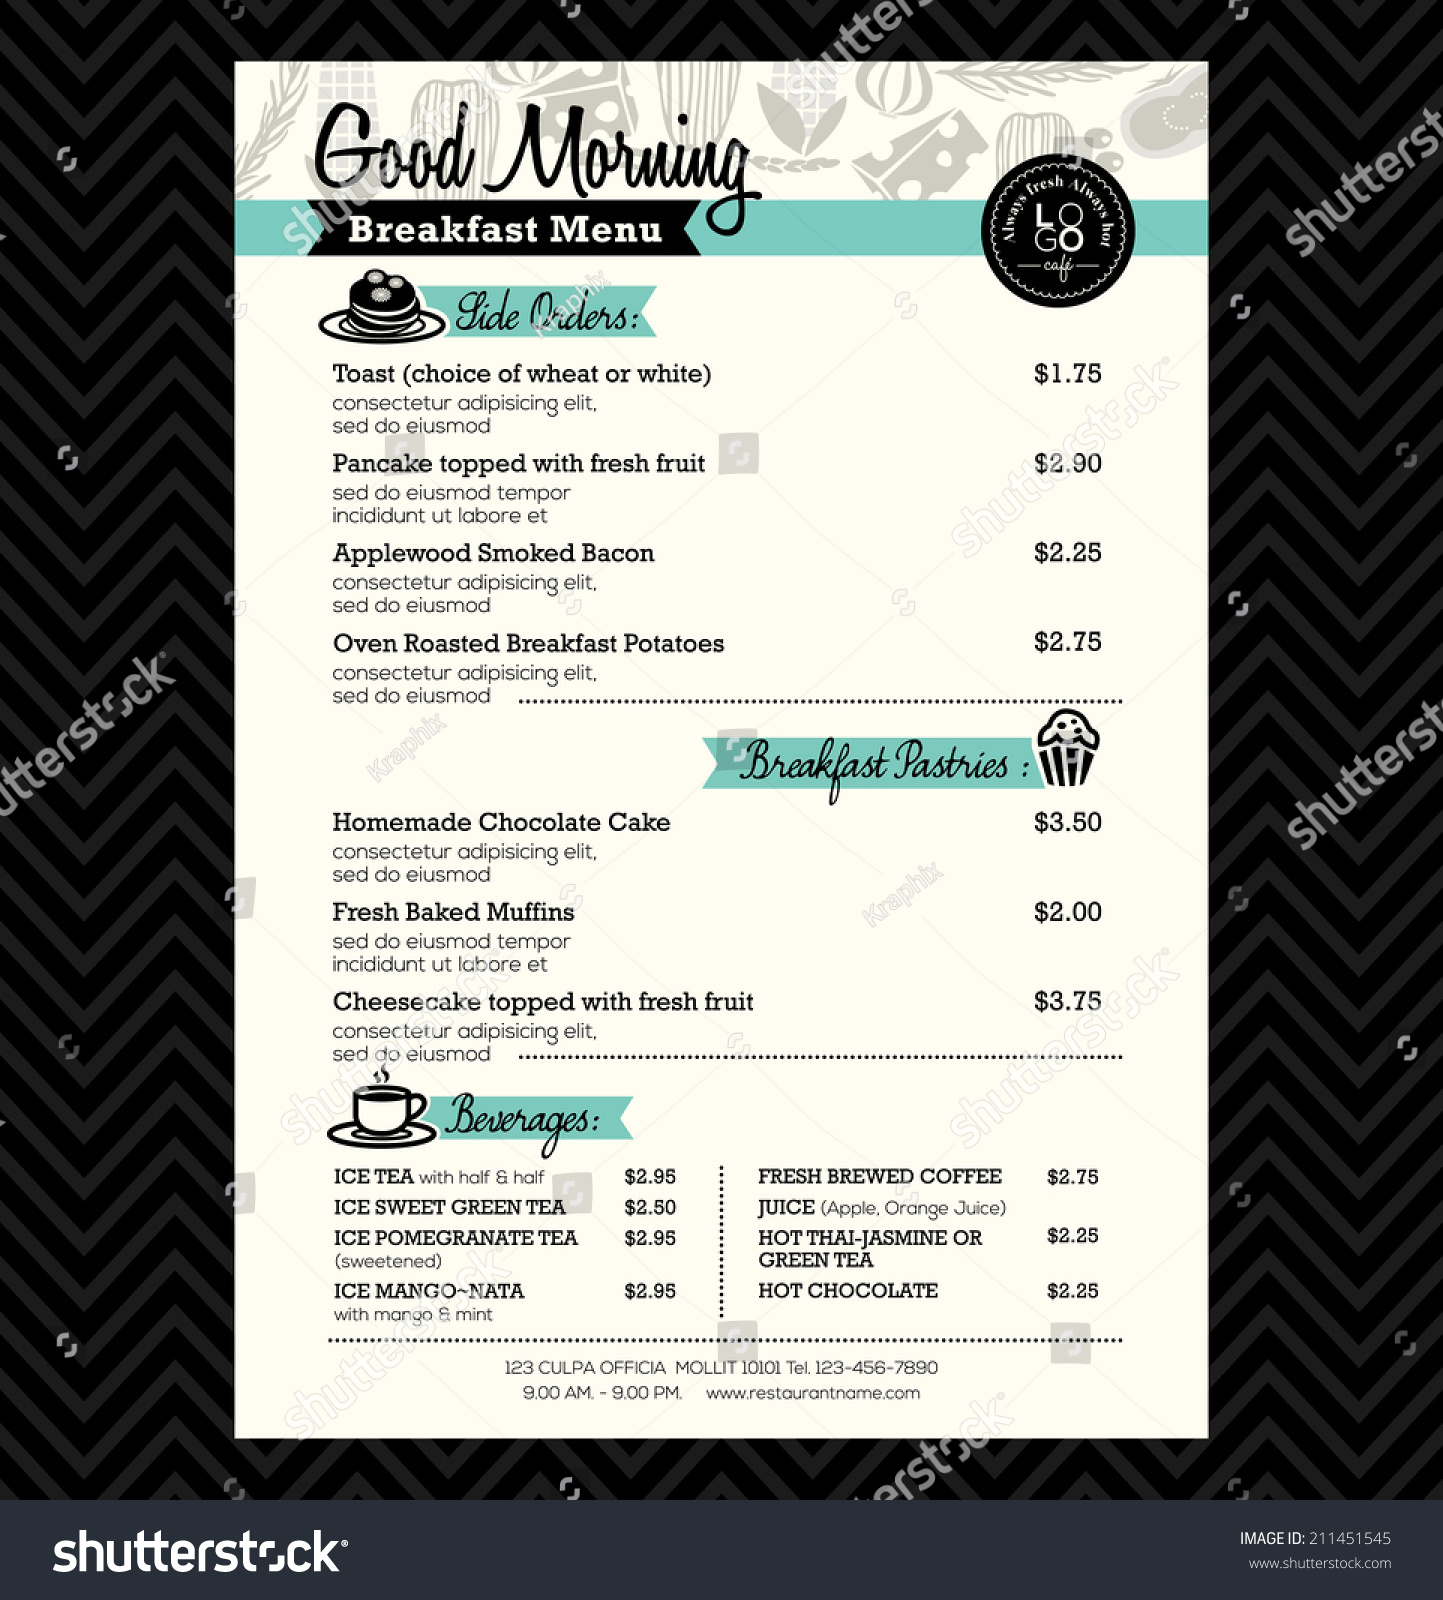 restaurant breakfast menu design template layout image vectorielle 211451545 shutterstock. Black Bedroom Furniture Sets. Home Design Ideas